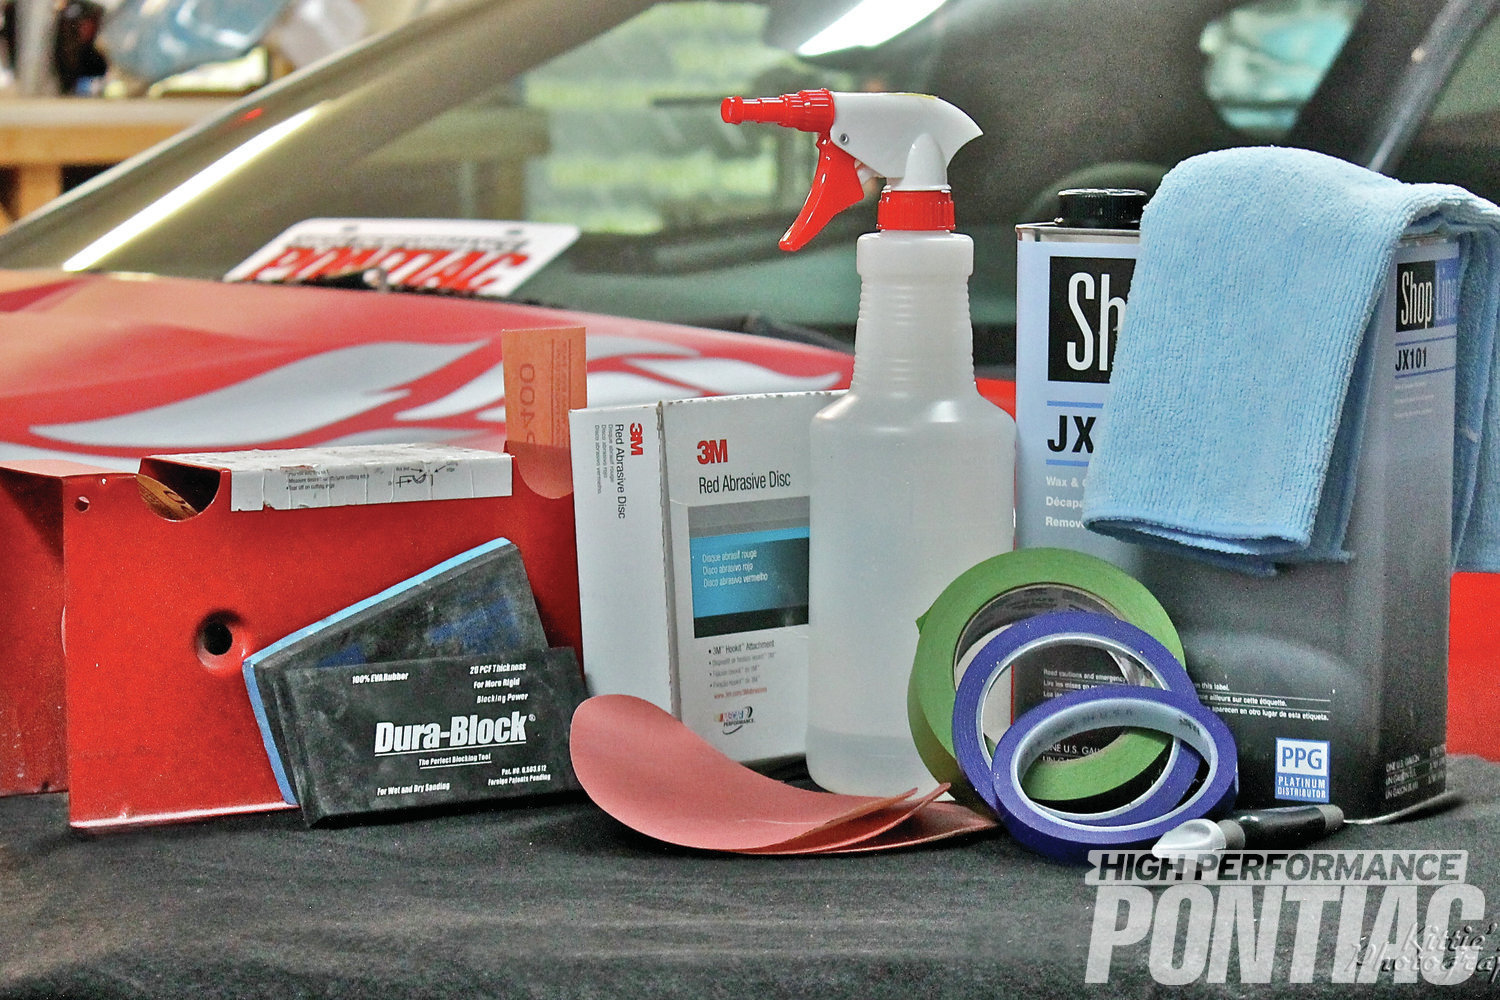 2 Superior Overlay Systems cleaned and prepped the surface to be treated using these common automotive detailing products, such as a block-sander, 800-grit wet and dry sandpapers, a spray bottle with a dish soap/water mixture, and wax and grease remover.